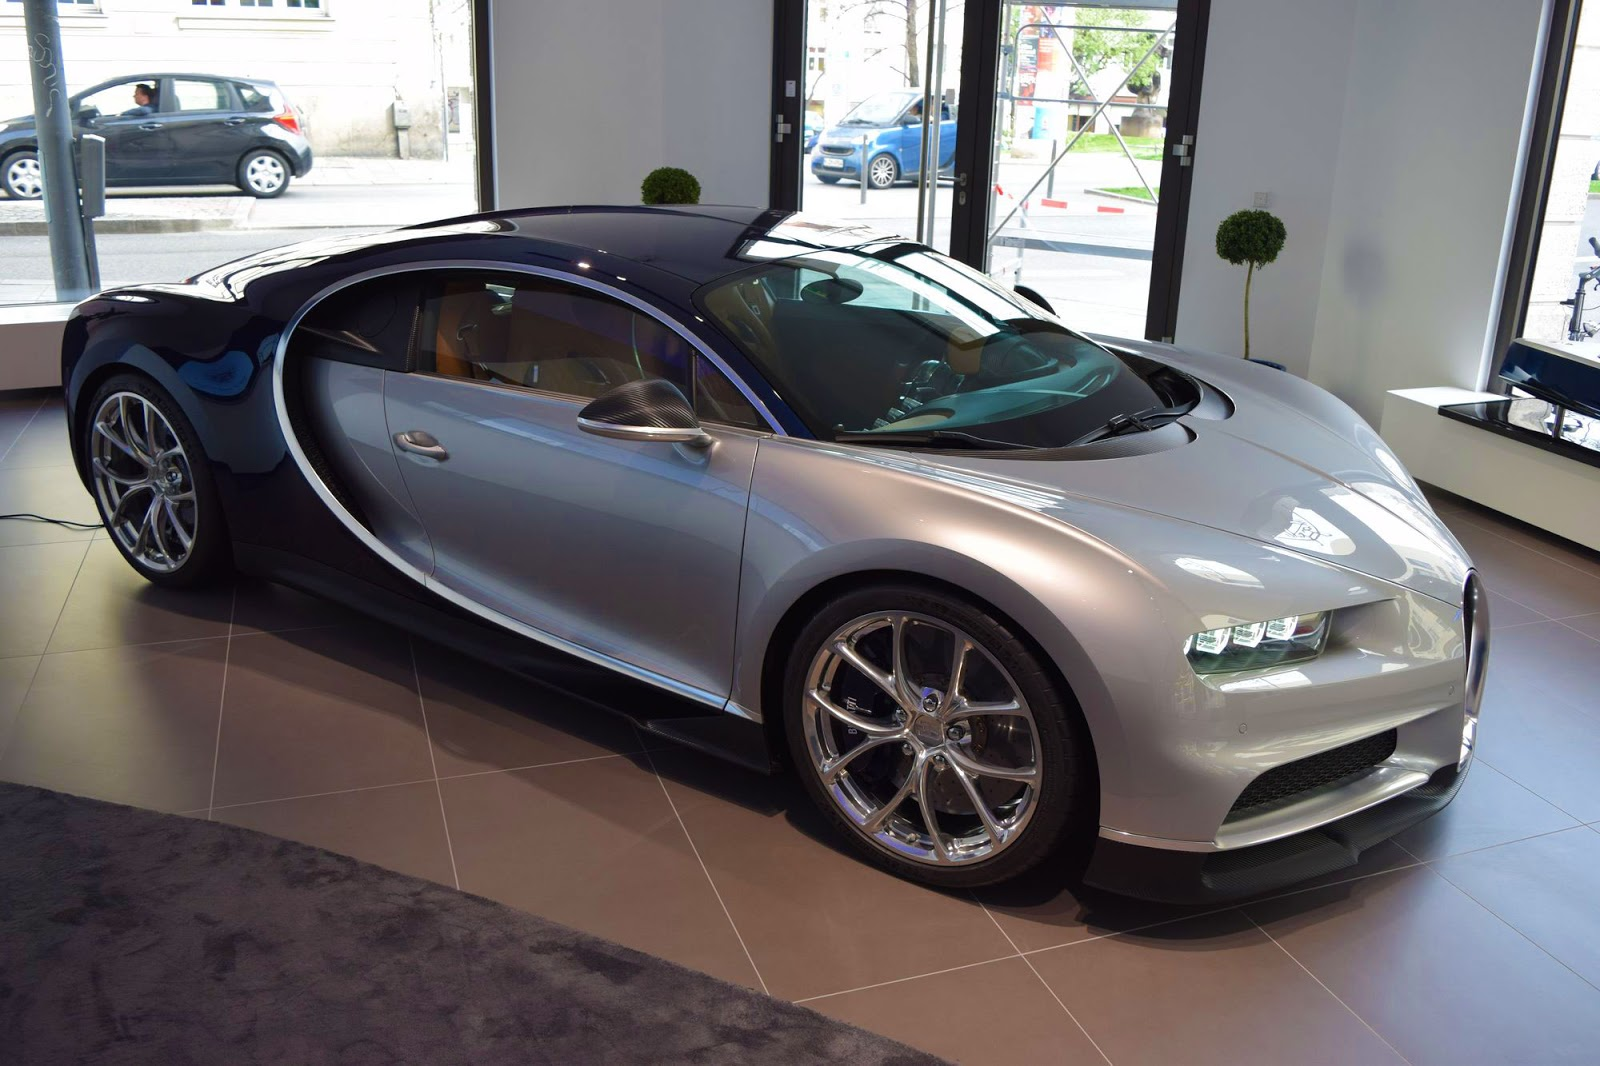 We Get Some Time Alone With The Bugatti Chiron Carscoops